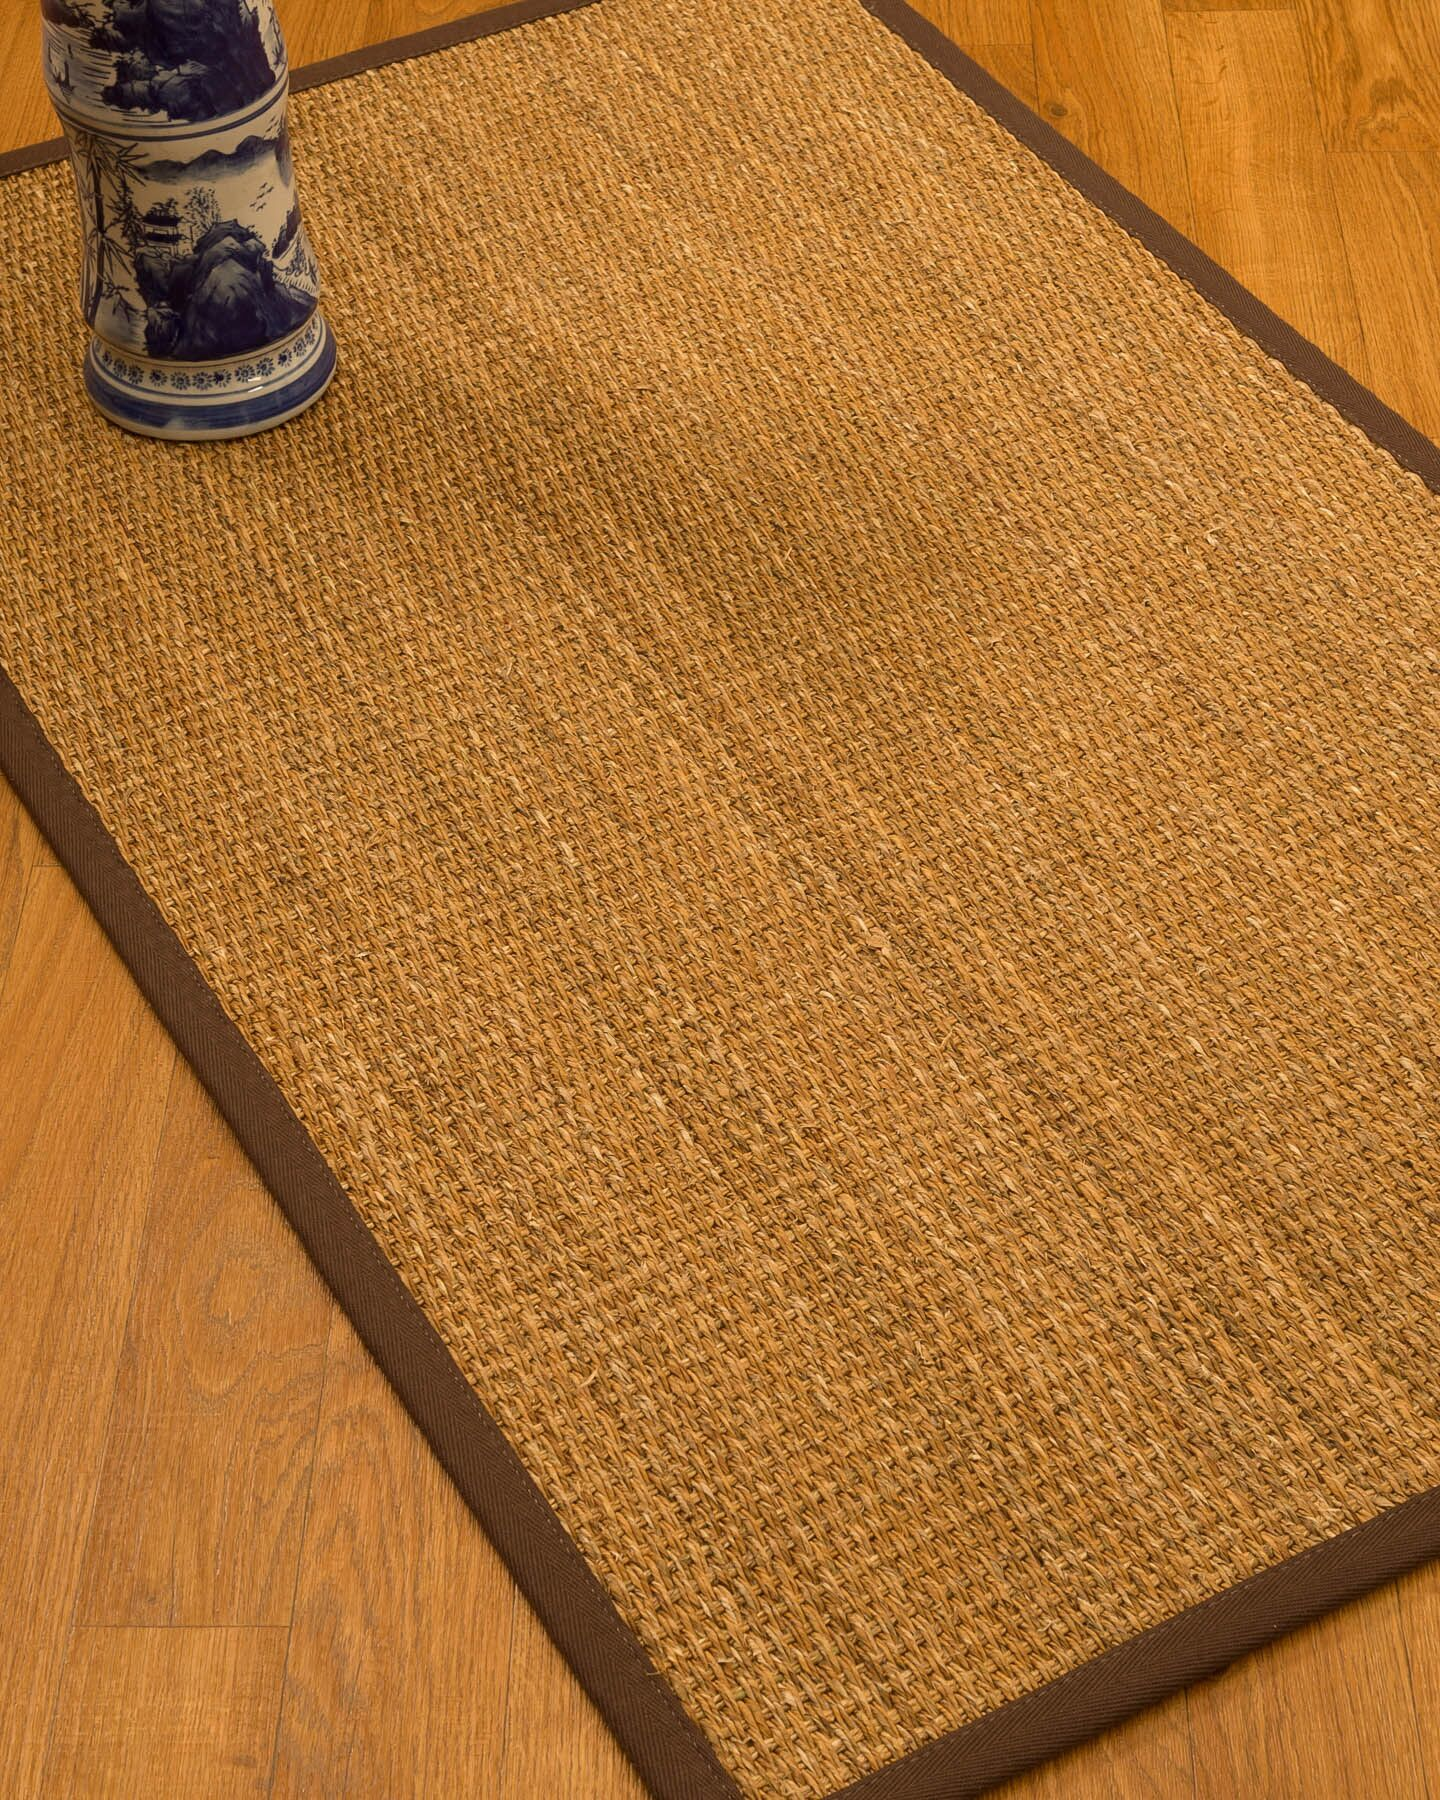 Kimberwood Border Hand-Woven Brown/Dark Brown Area Rug Rug Pad Included: No, Rug Size: Rectangle 3' x 5'